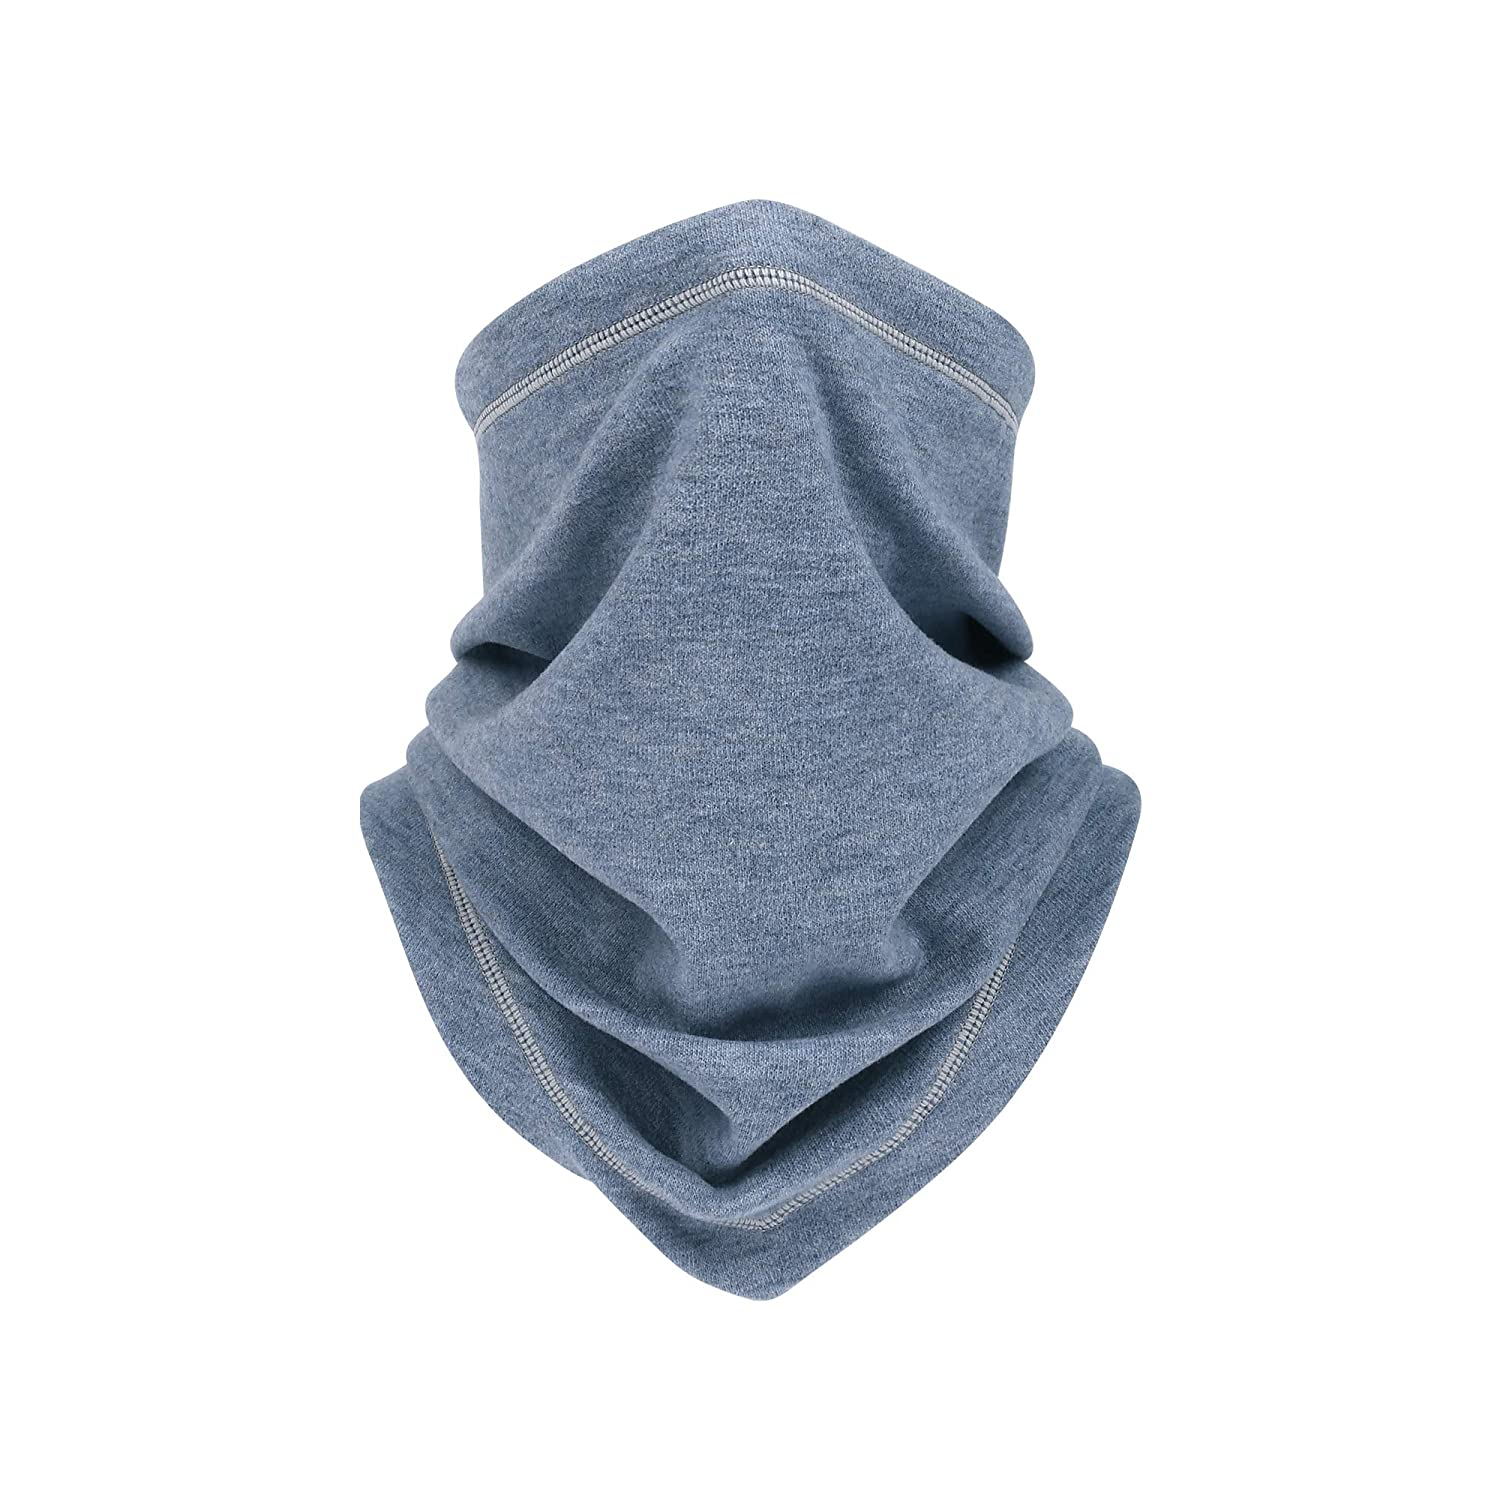 Cold Weather Face Mask for Winter Outdoor Sports Protection Fleece Neck Warmer Windproof Neck Gaiter